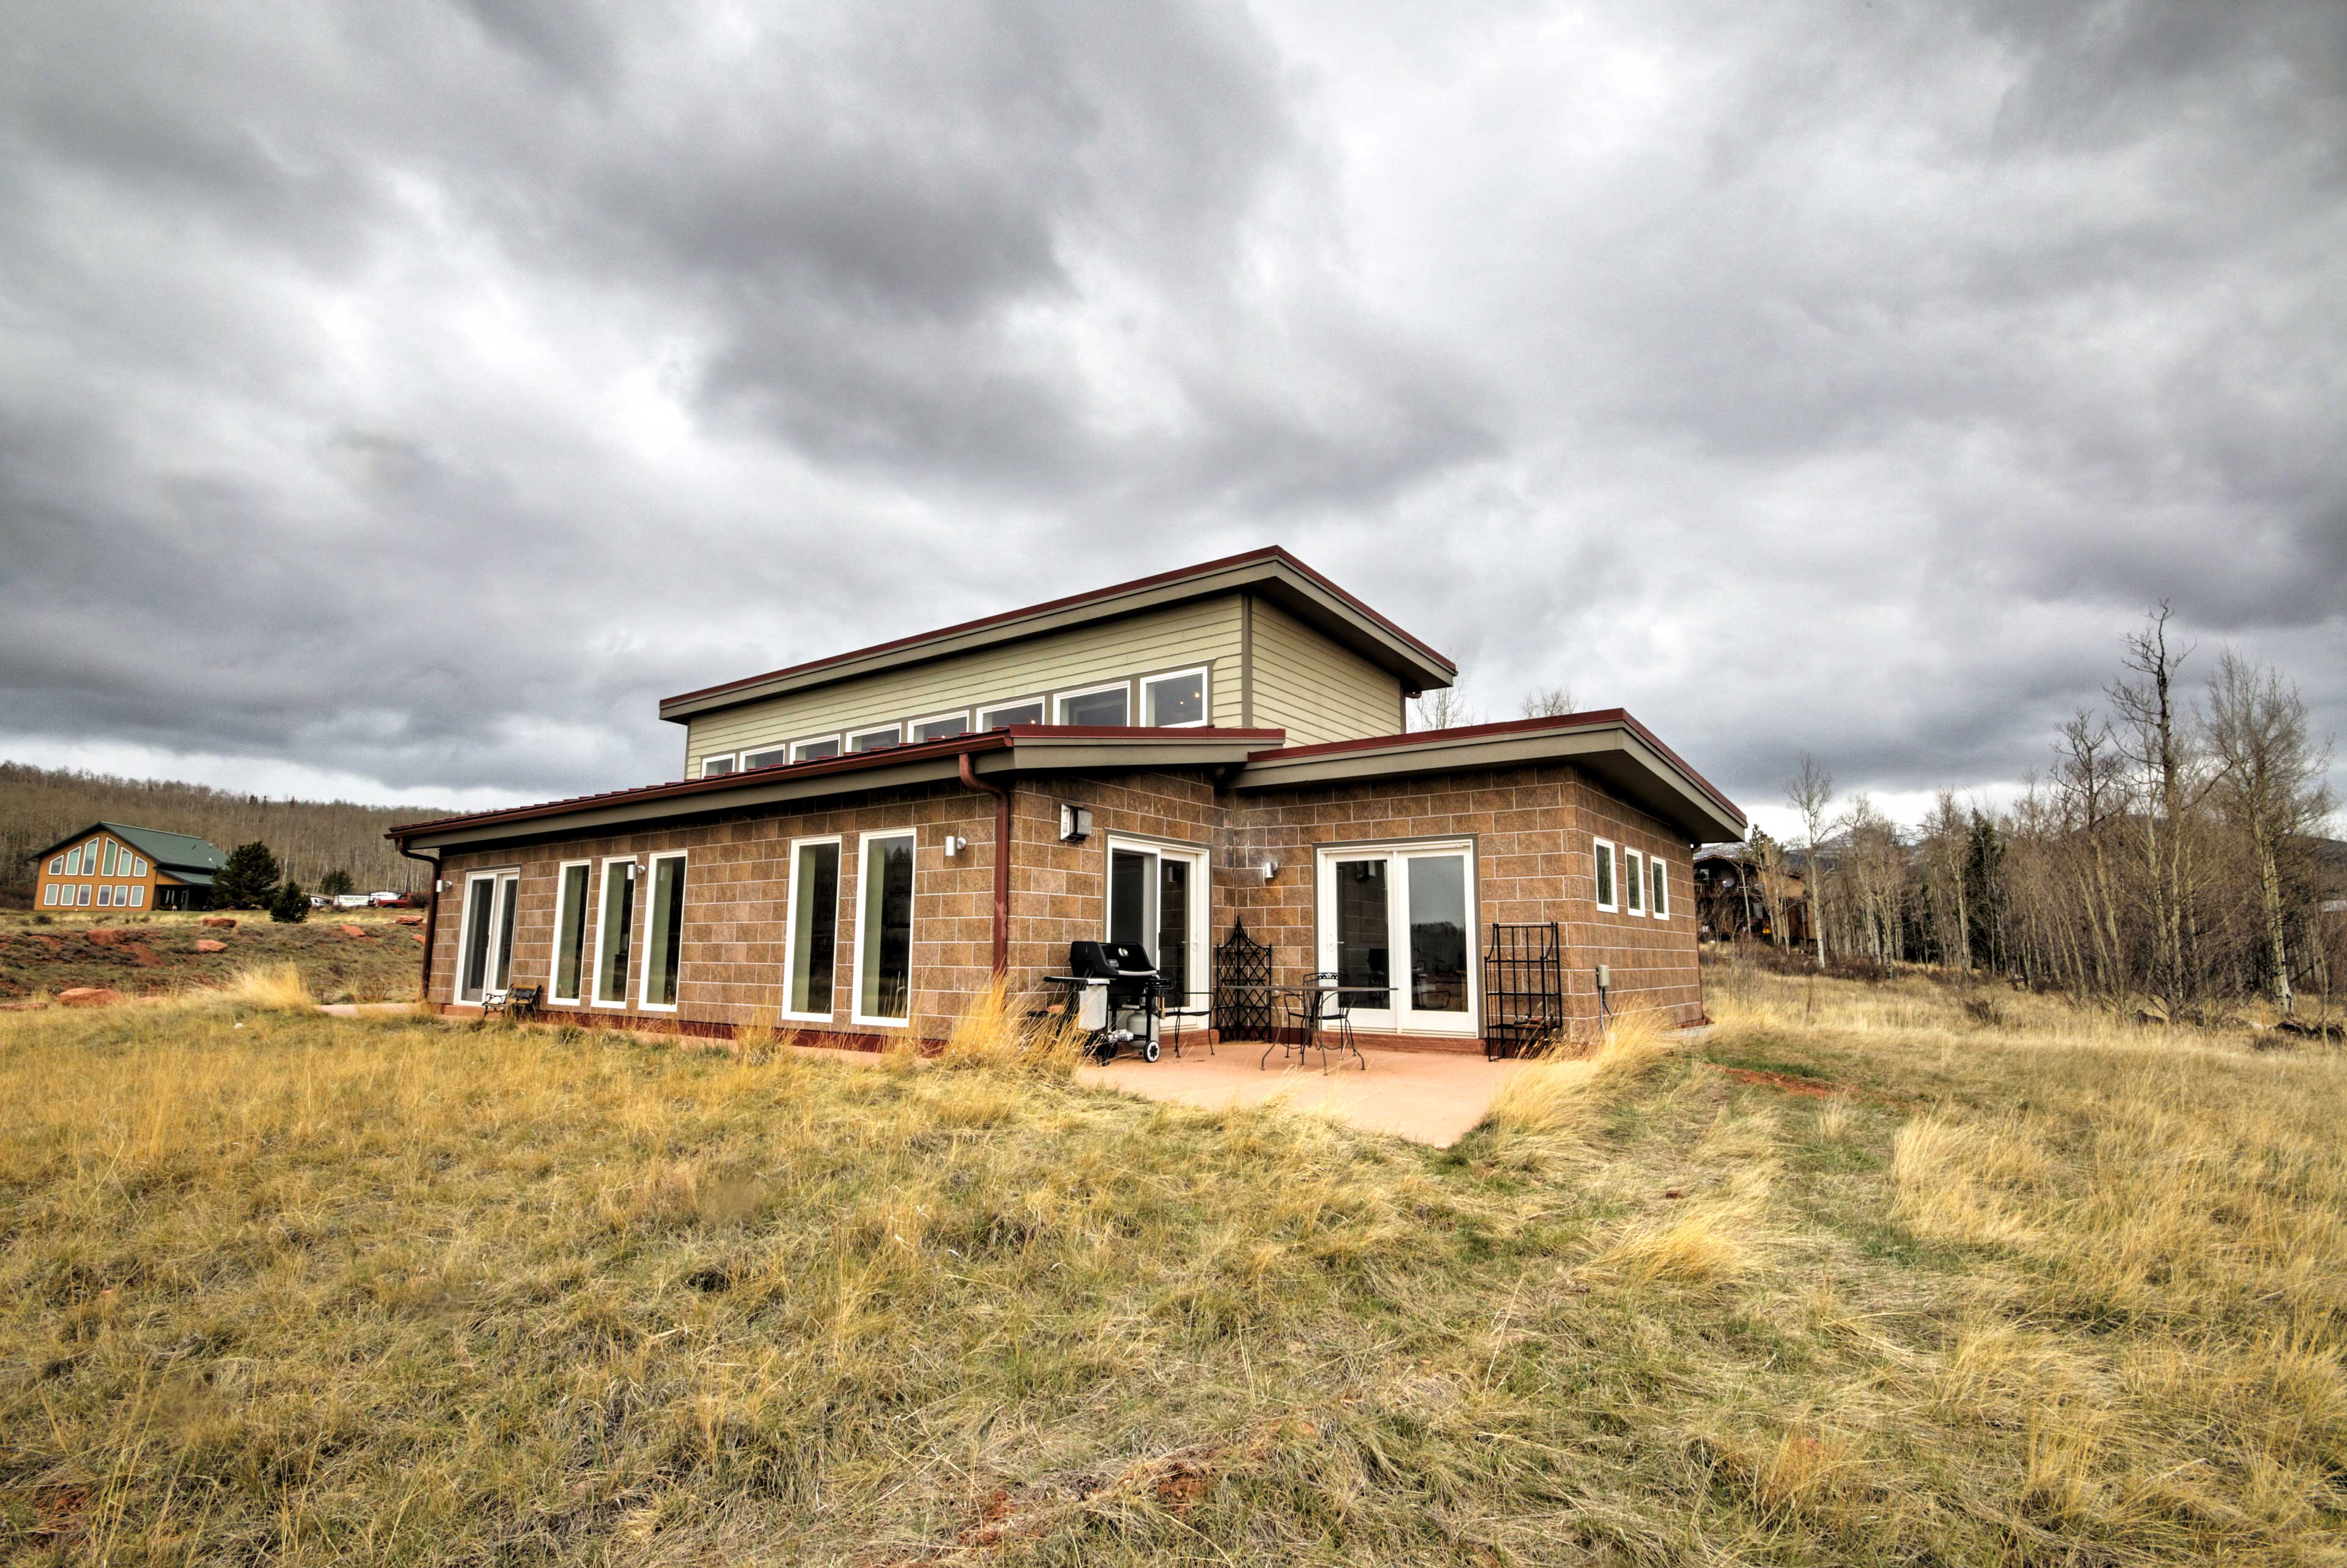 Guests will comfortably sleep in this eco-friendly home which sits on 6-acres.